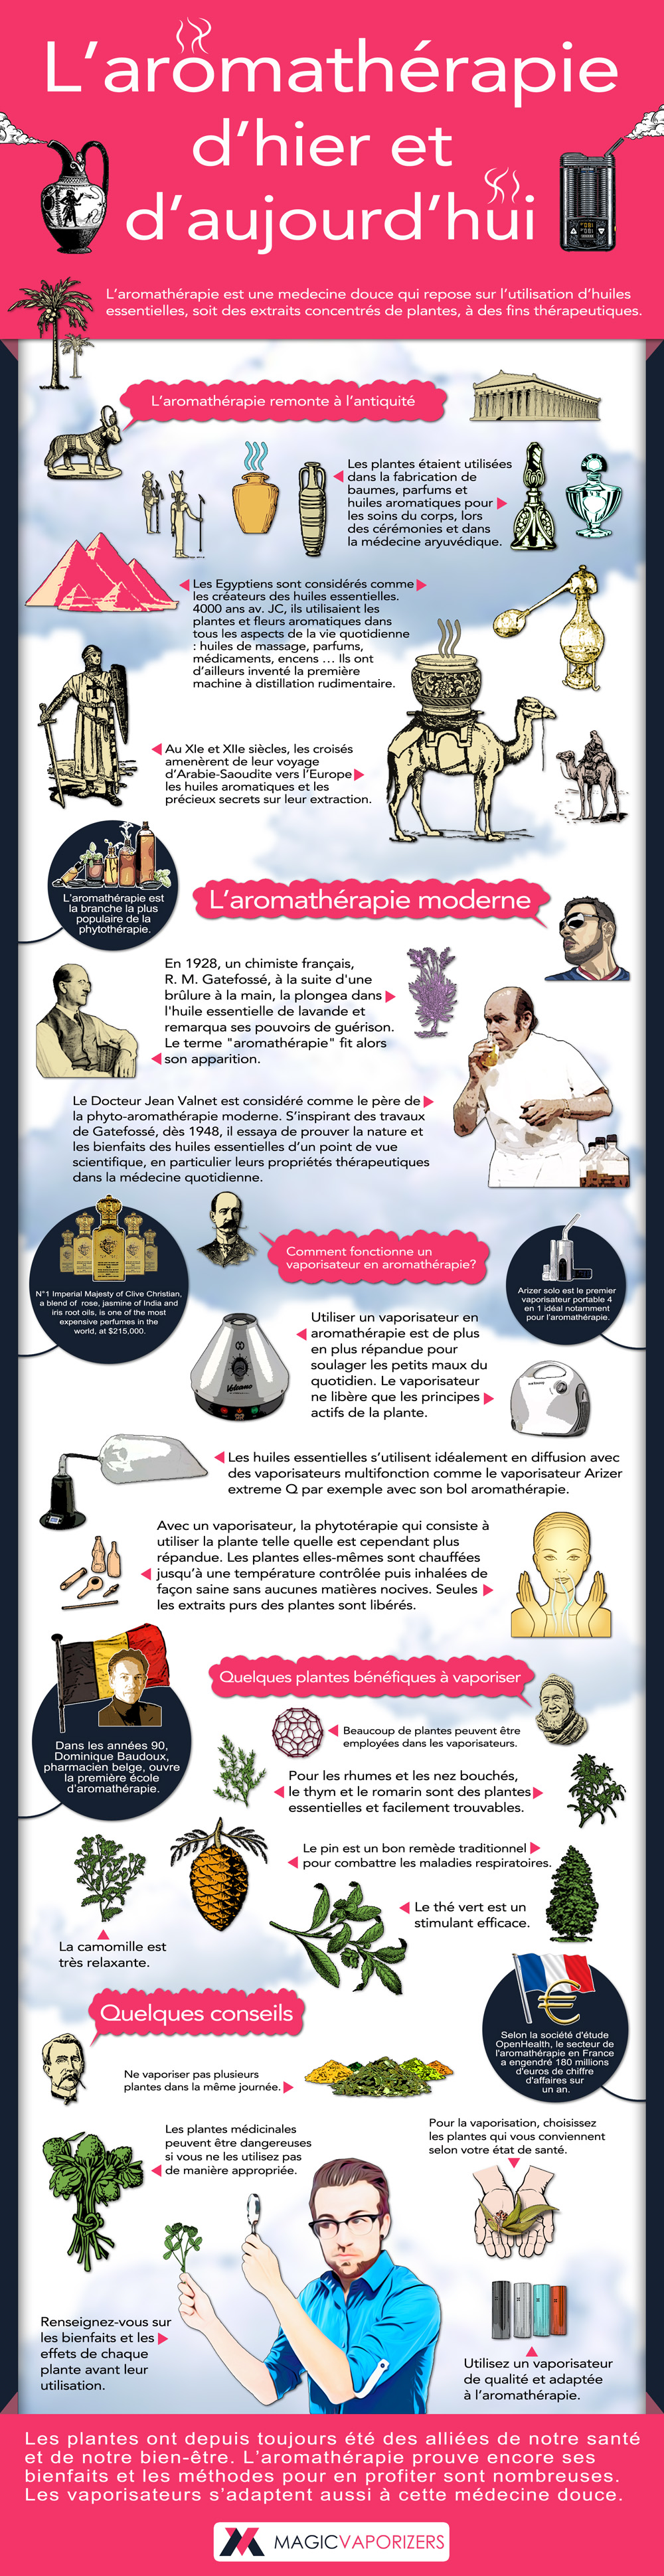 Infographic for Magic Vaporizers in French, Aromeatherapy, yesterday and today for Social Media sharing